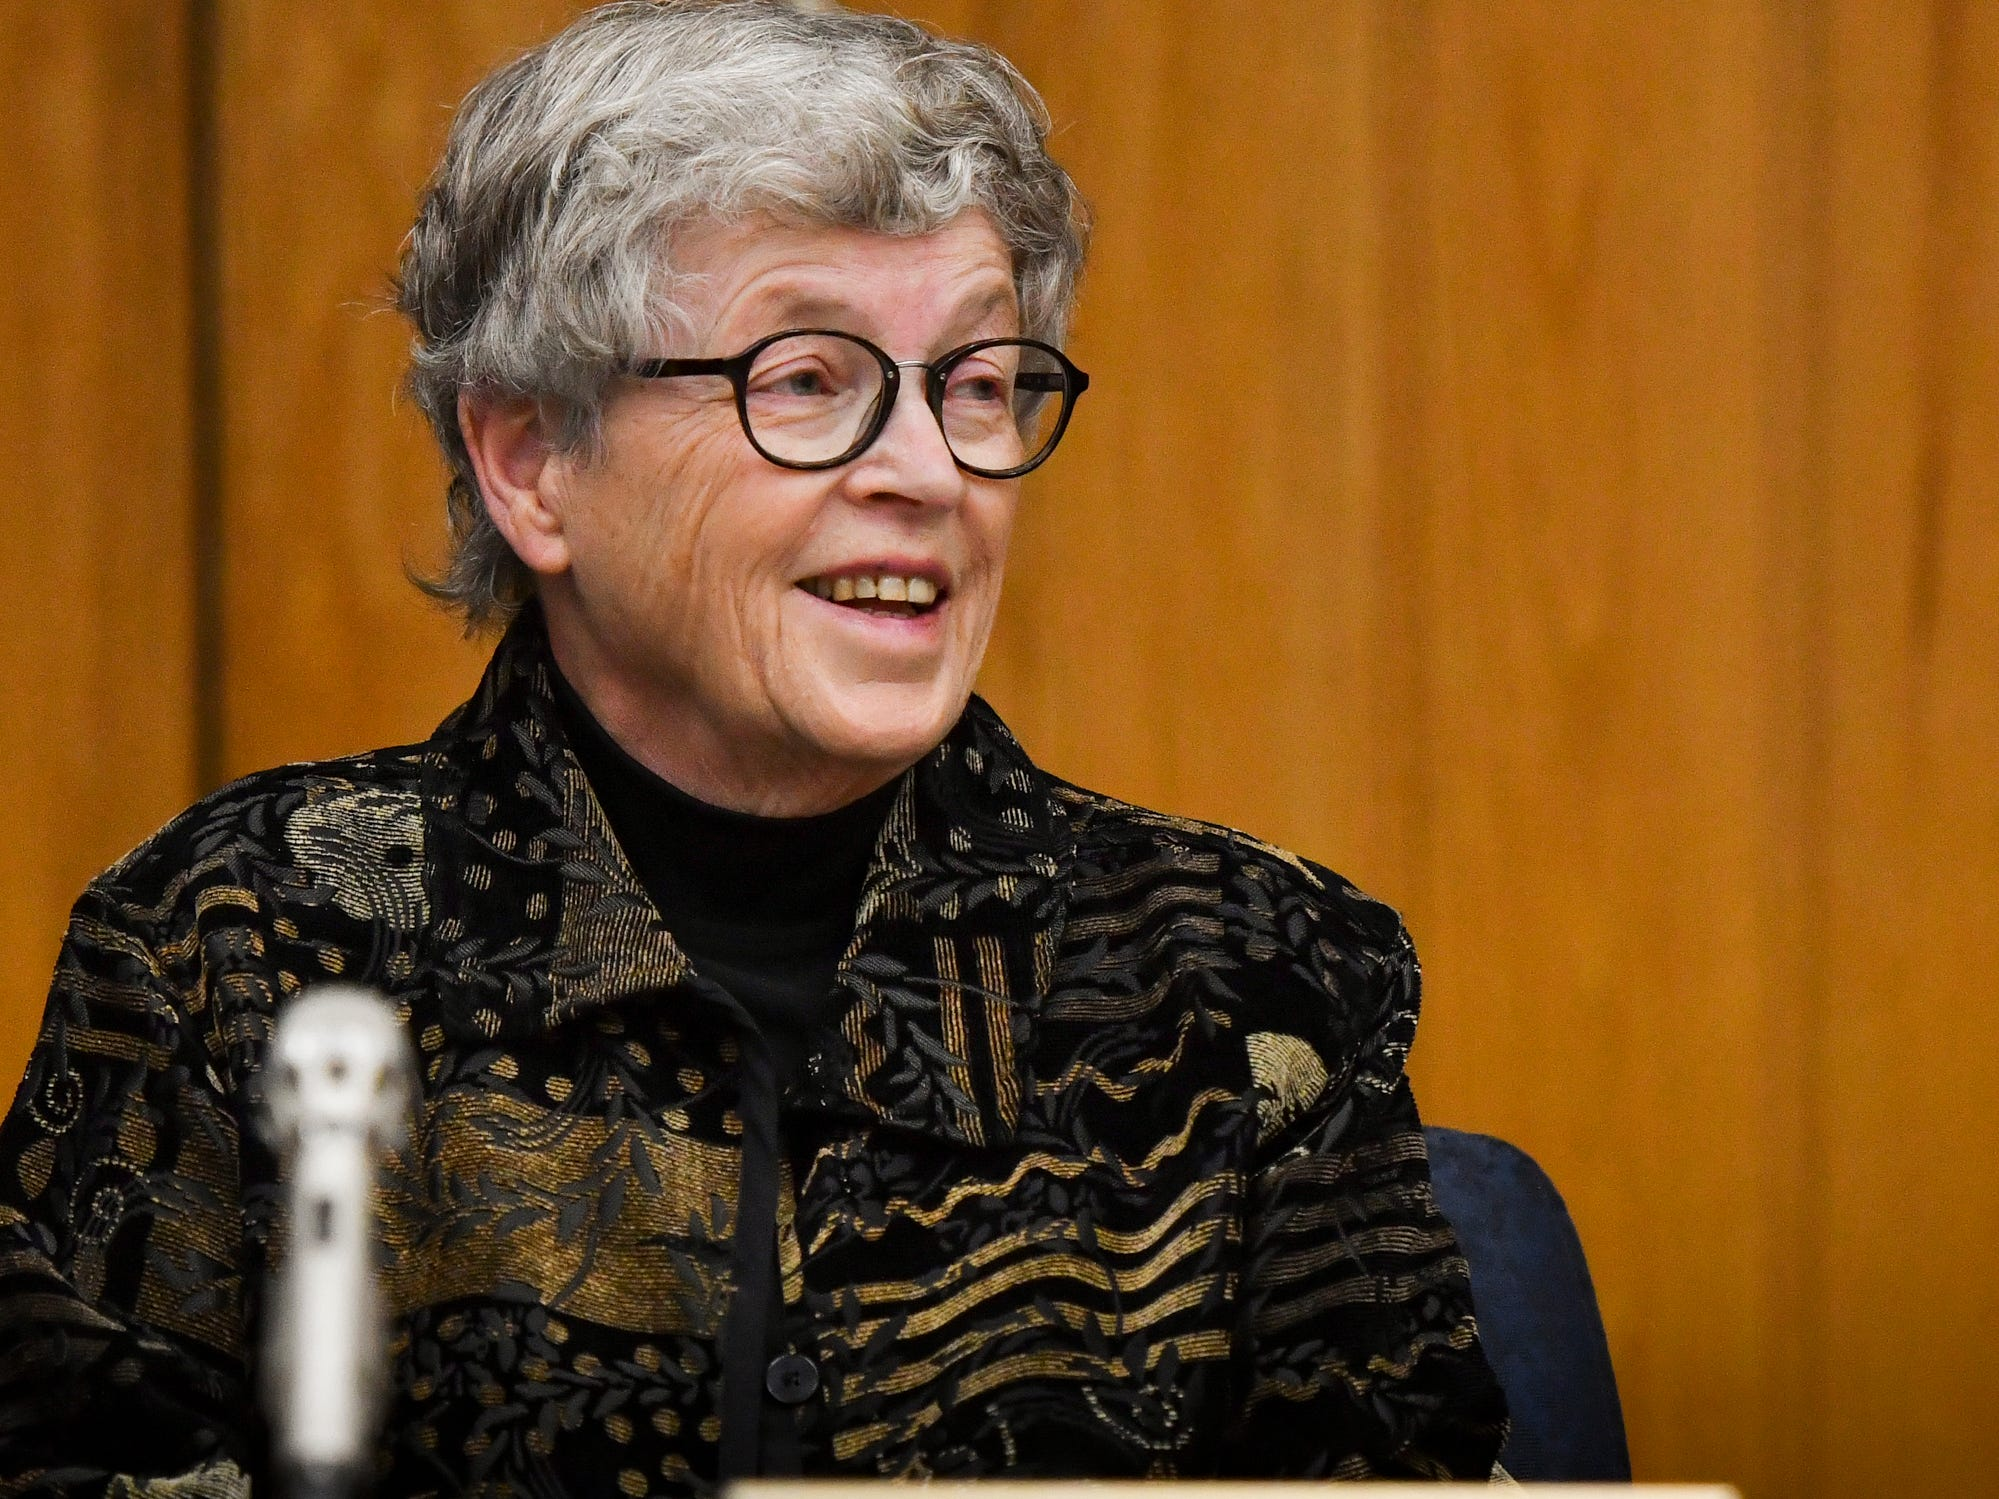 Former MSU President Lou Anna Simon smiles because of scheduling conflicts between the prosecution and defense for her upcoming preliminary exam during her arraignment in Judge Julie Reincke's Eaton County Court Monday, Nov. 26, 2018.  She was arraigned on four charges of lying to police related to the Larry Nassar investigation.  [AP Photo/Matthew Dae Smith/Lansing State Journal]